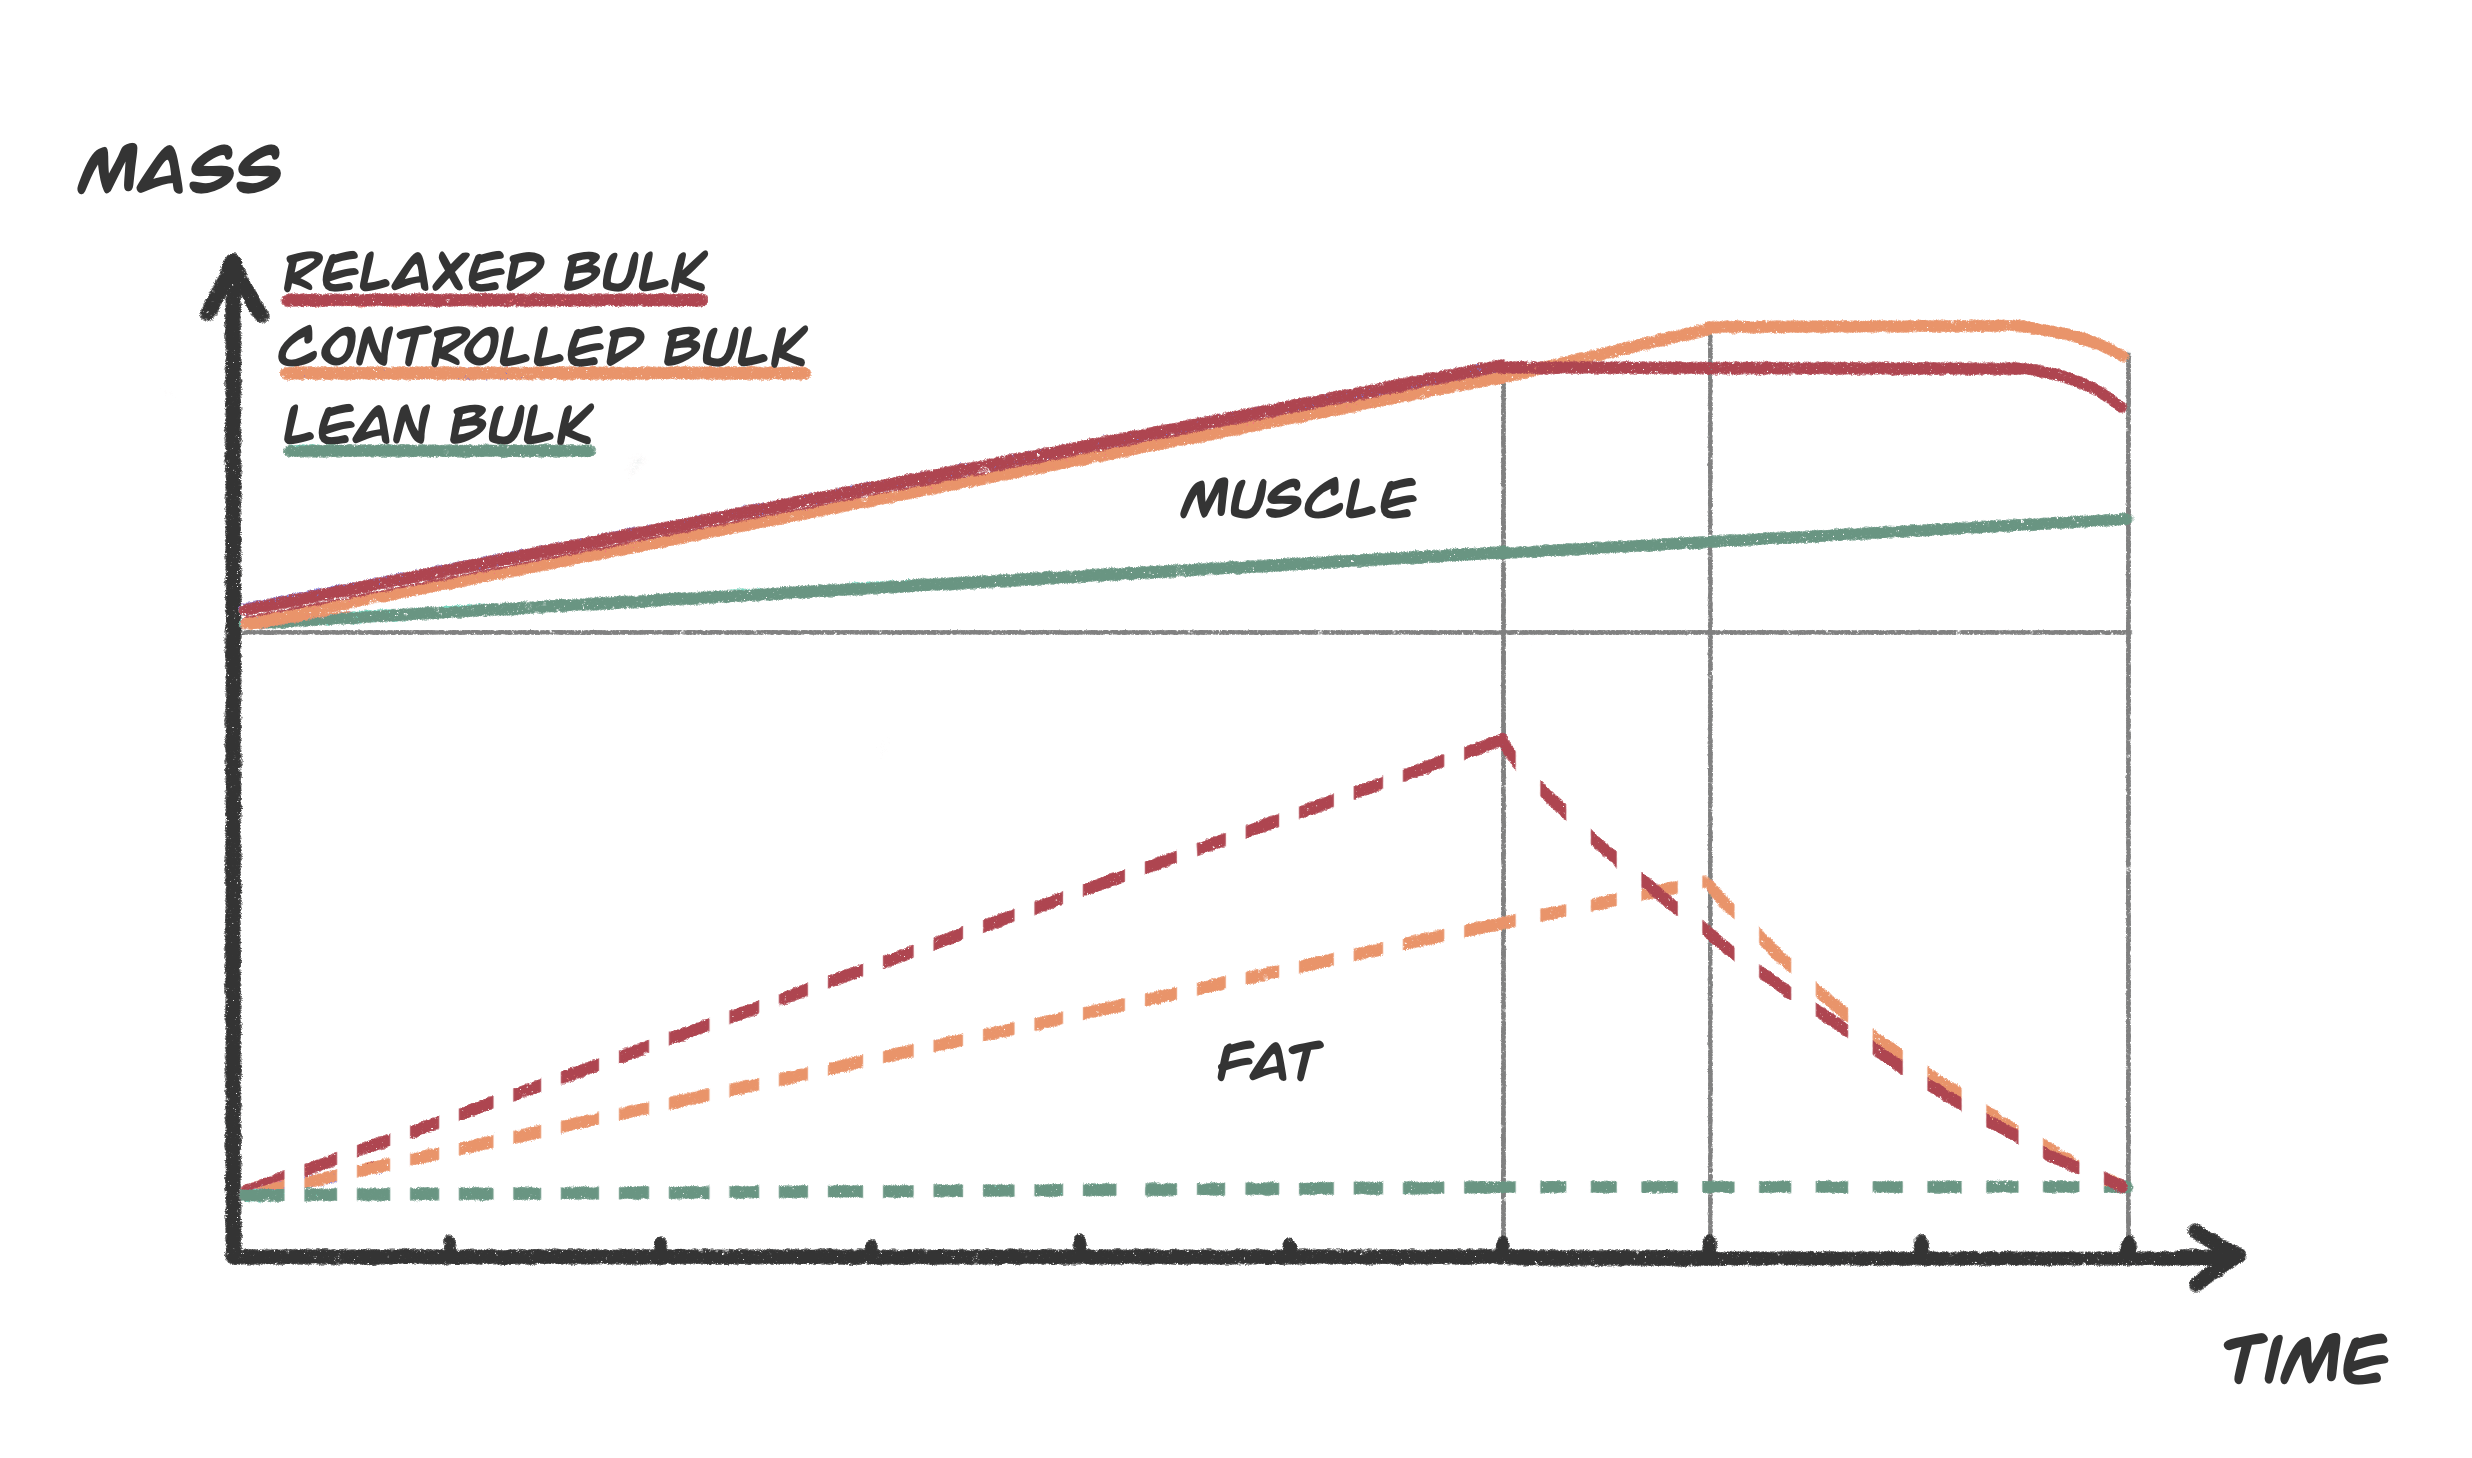 Comparing Bulking Styles